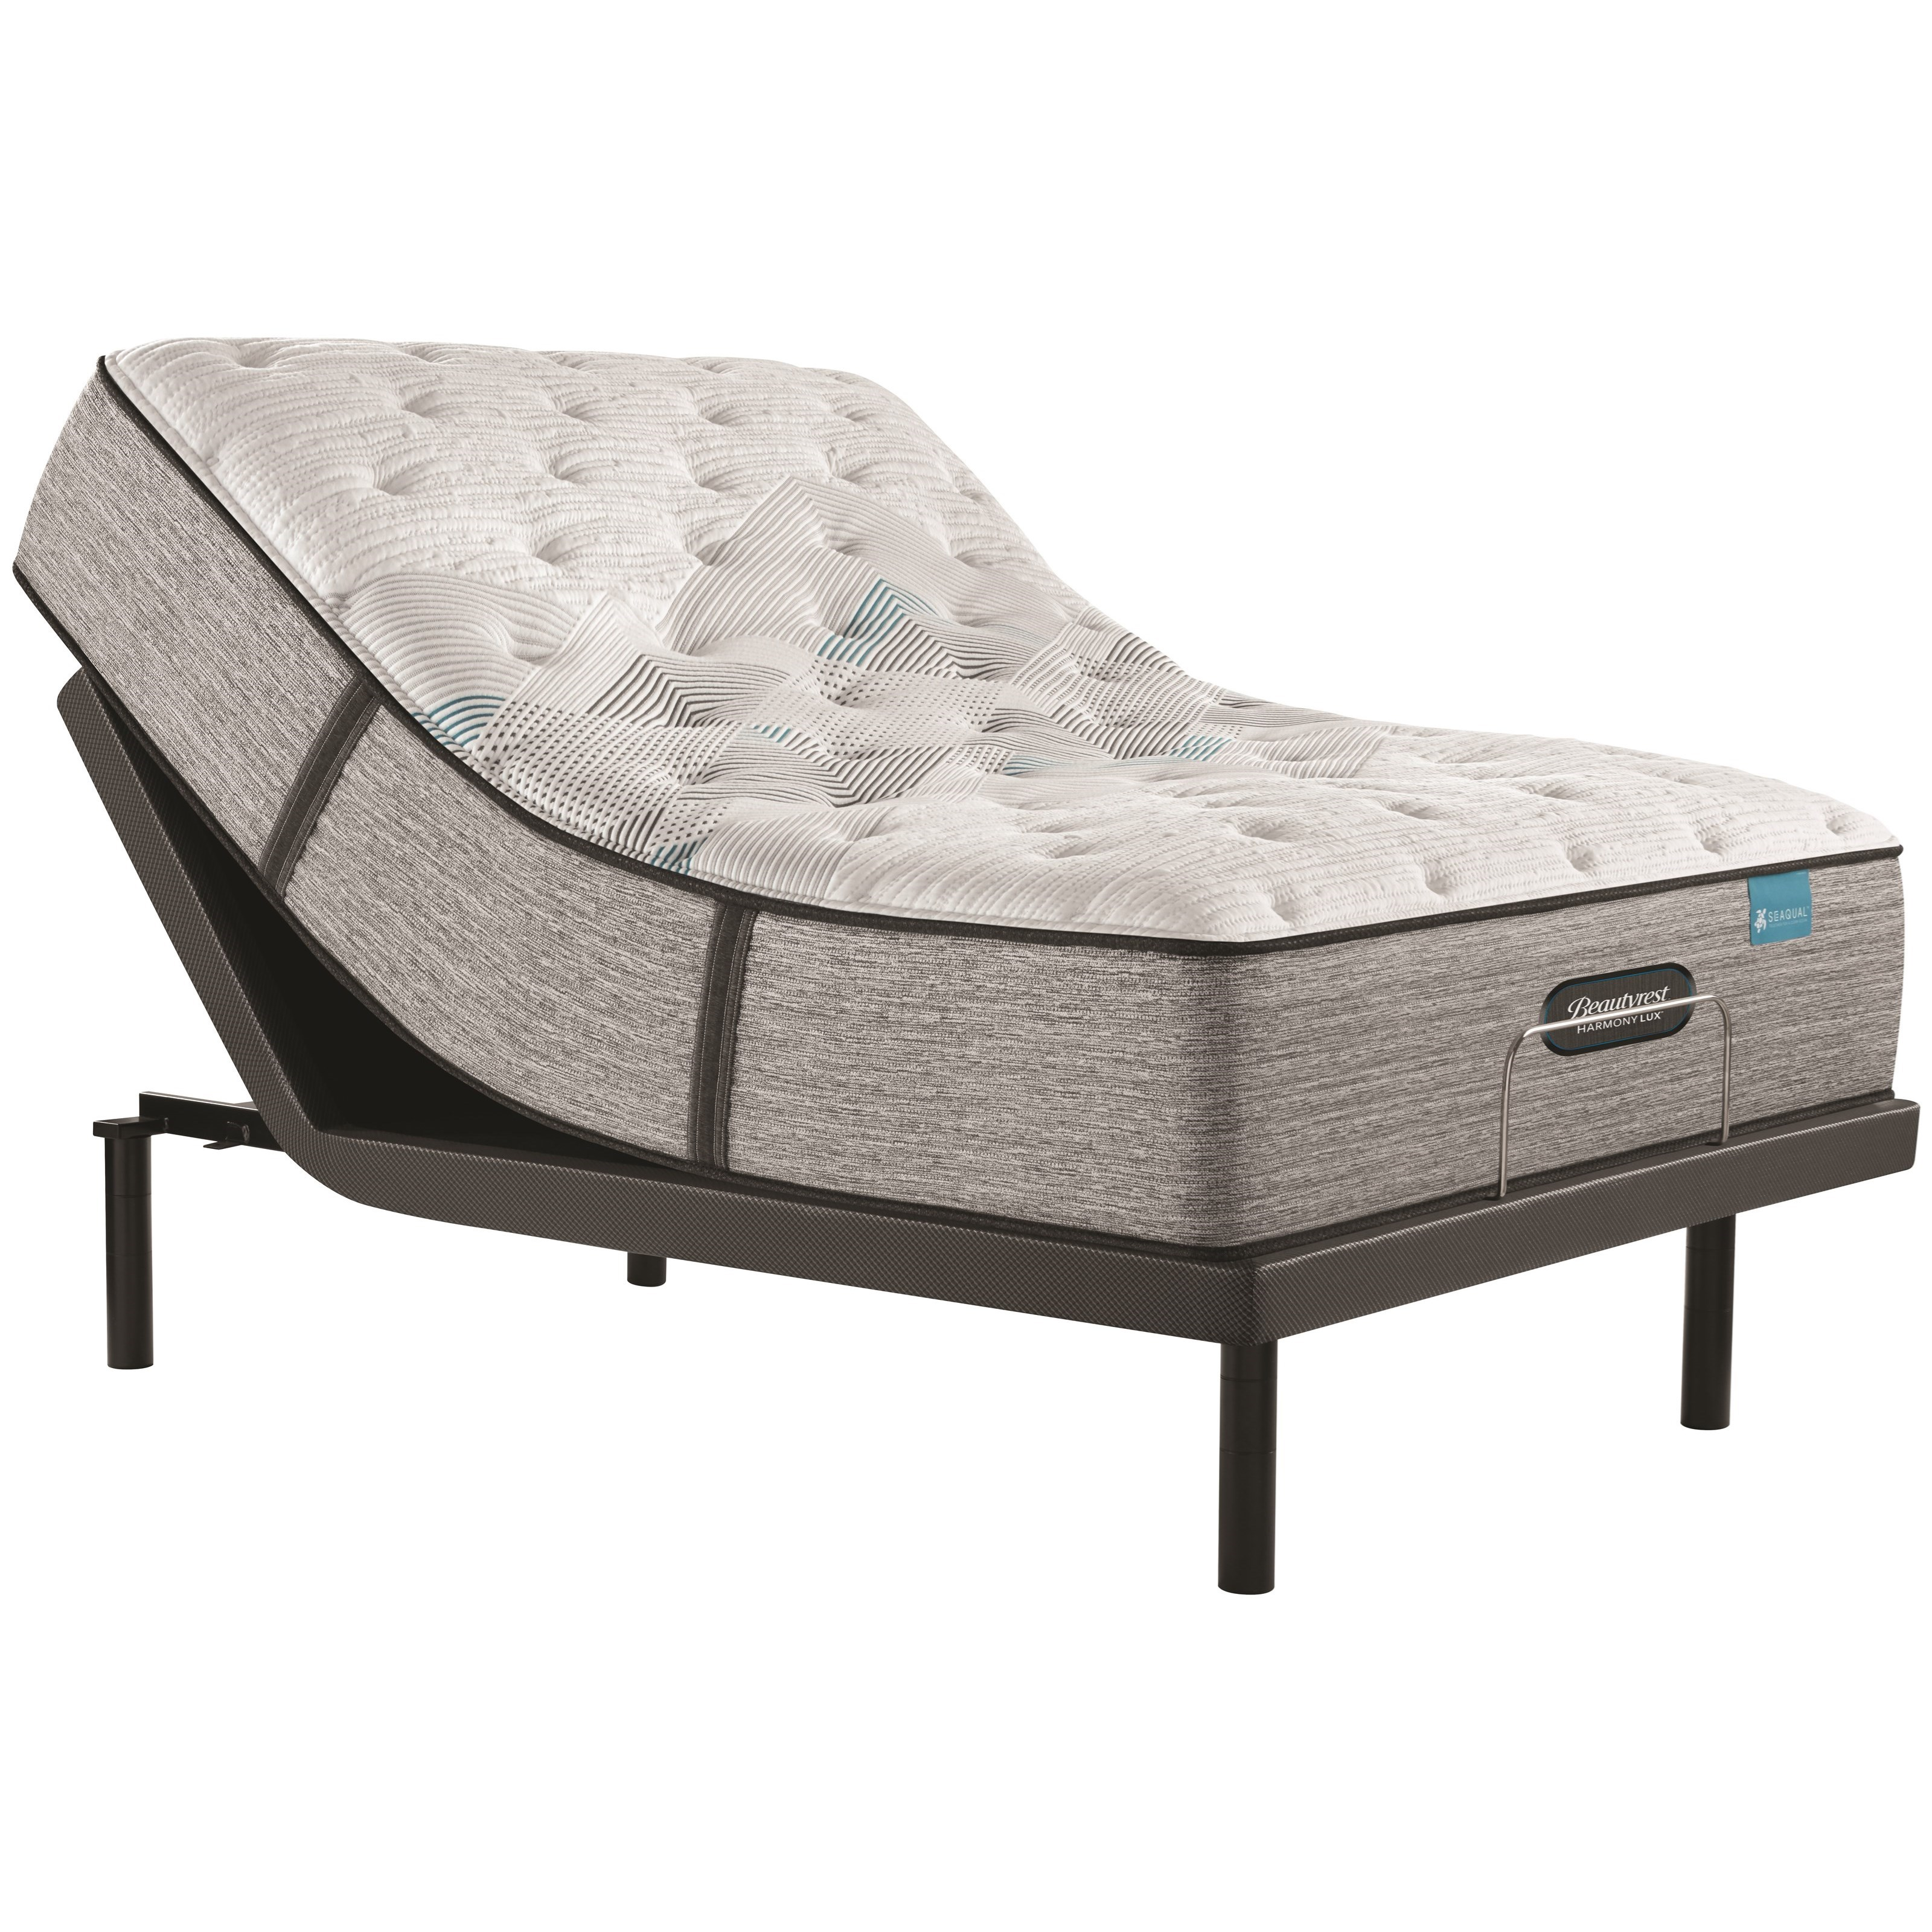 "Carbon Series Plush Queen 13 3/4"" Plush Adj Set by Beautyrest at Walker's Mattress"